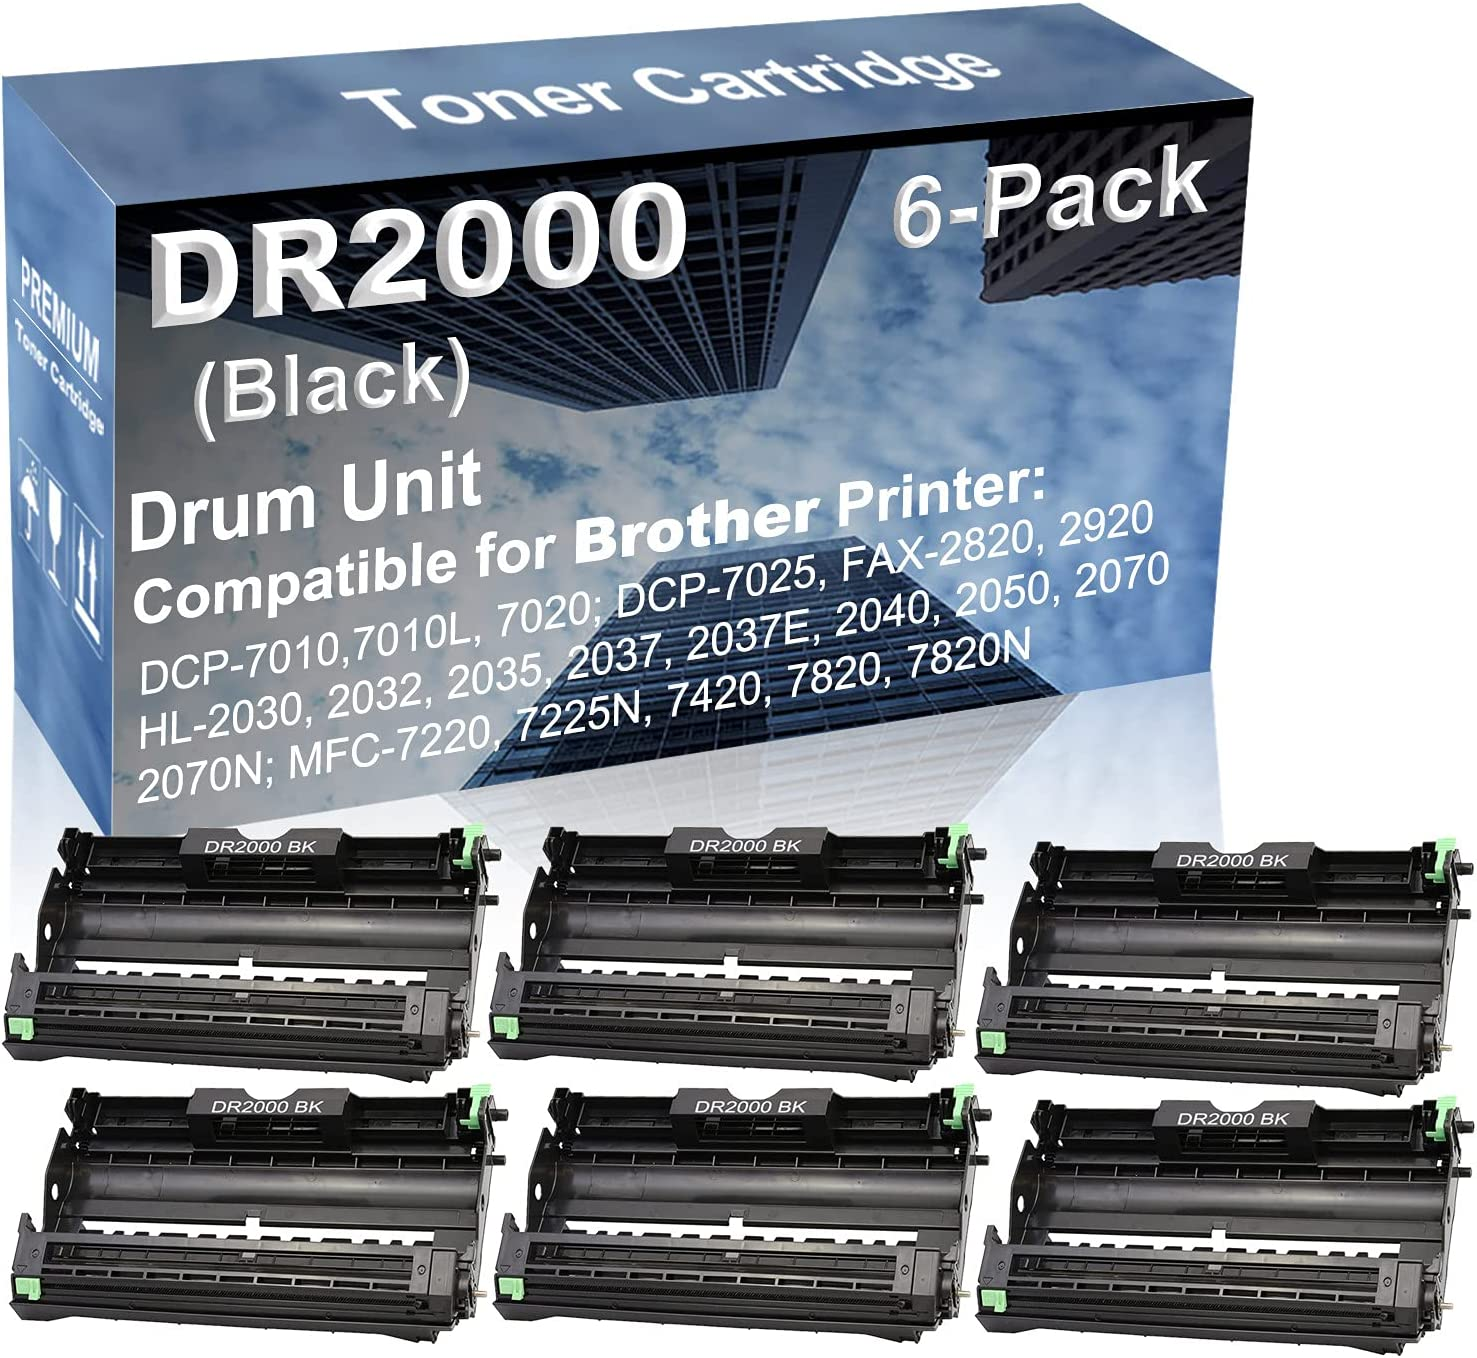 6-Pack Compatible Drum Unit (Black) Replacement for Brother DR2000 Drum Kit use for Brother HL-2070N, MFC-7220, MFC-7225N, MFC-7420, MFC-7820, MFC-7820N Printer